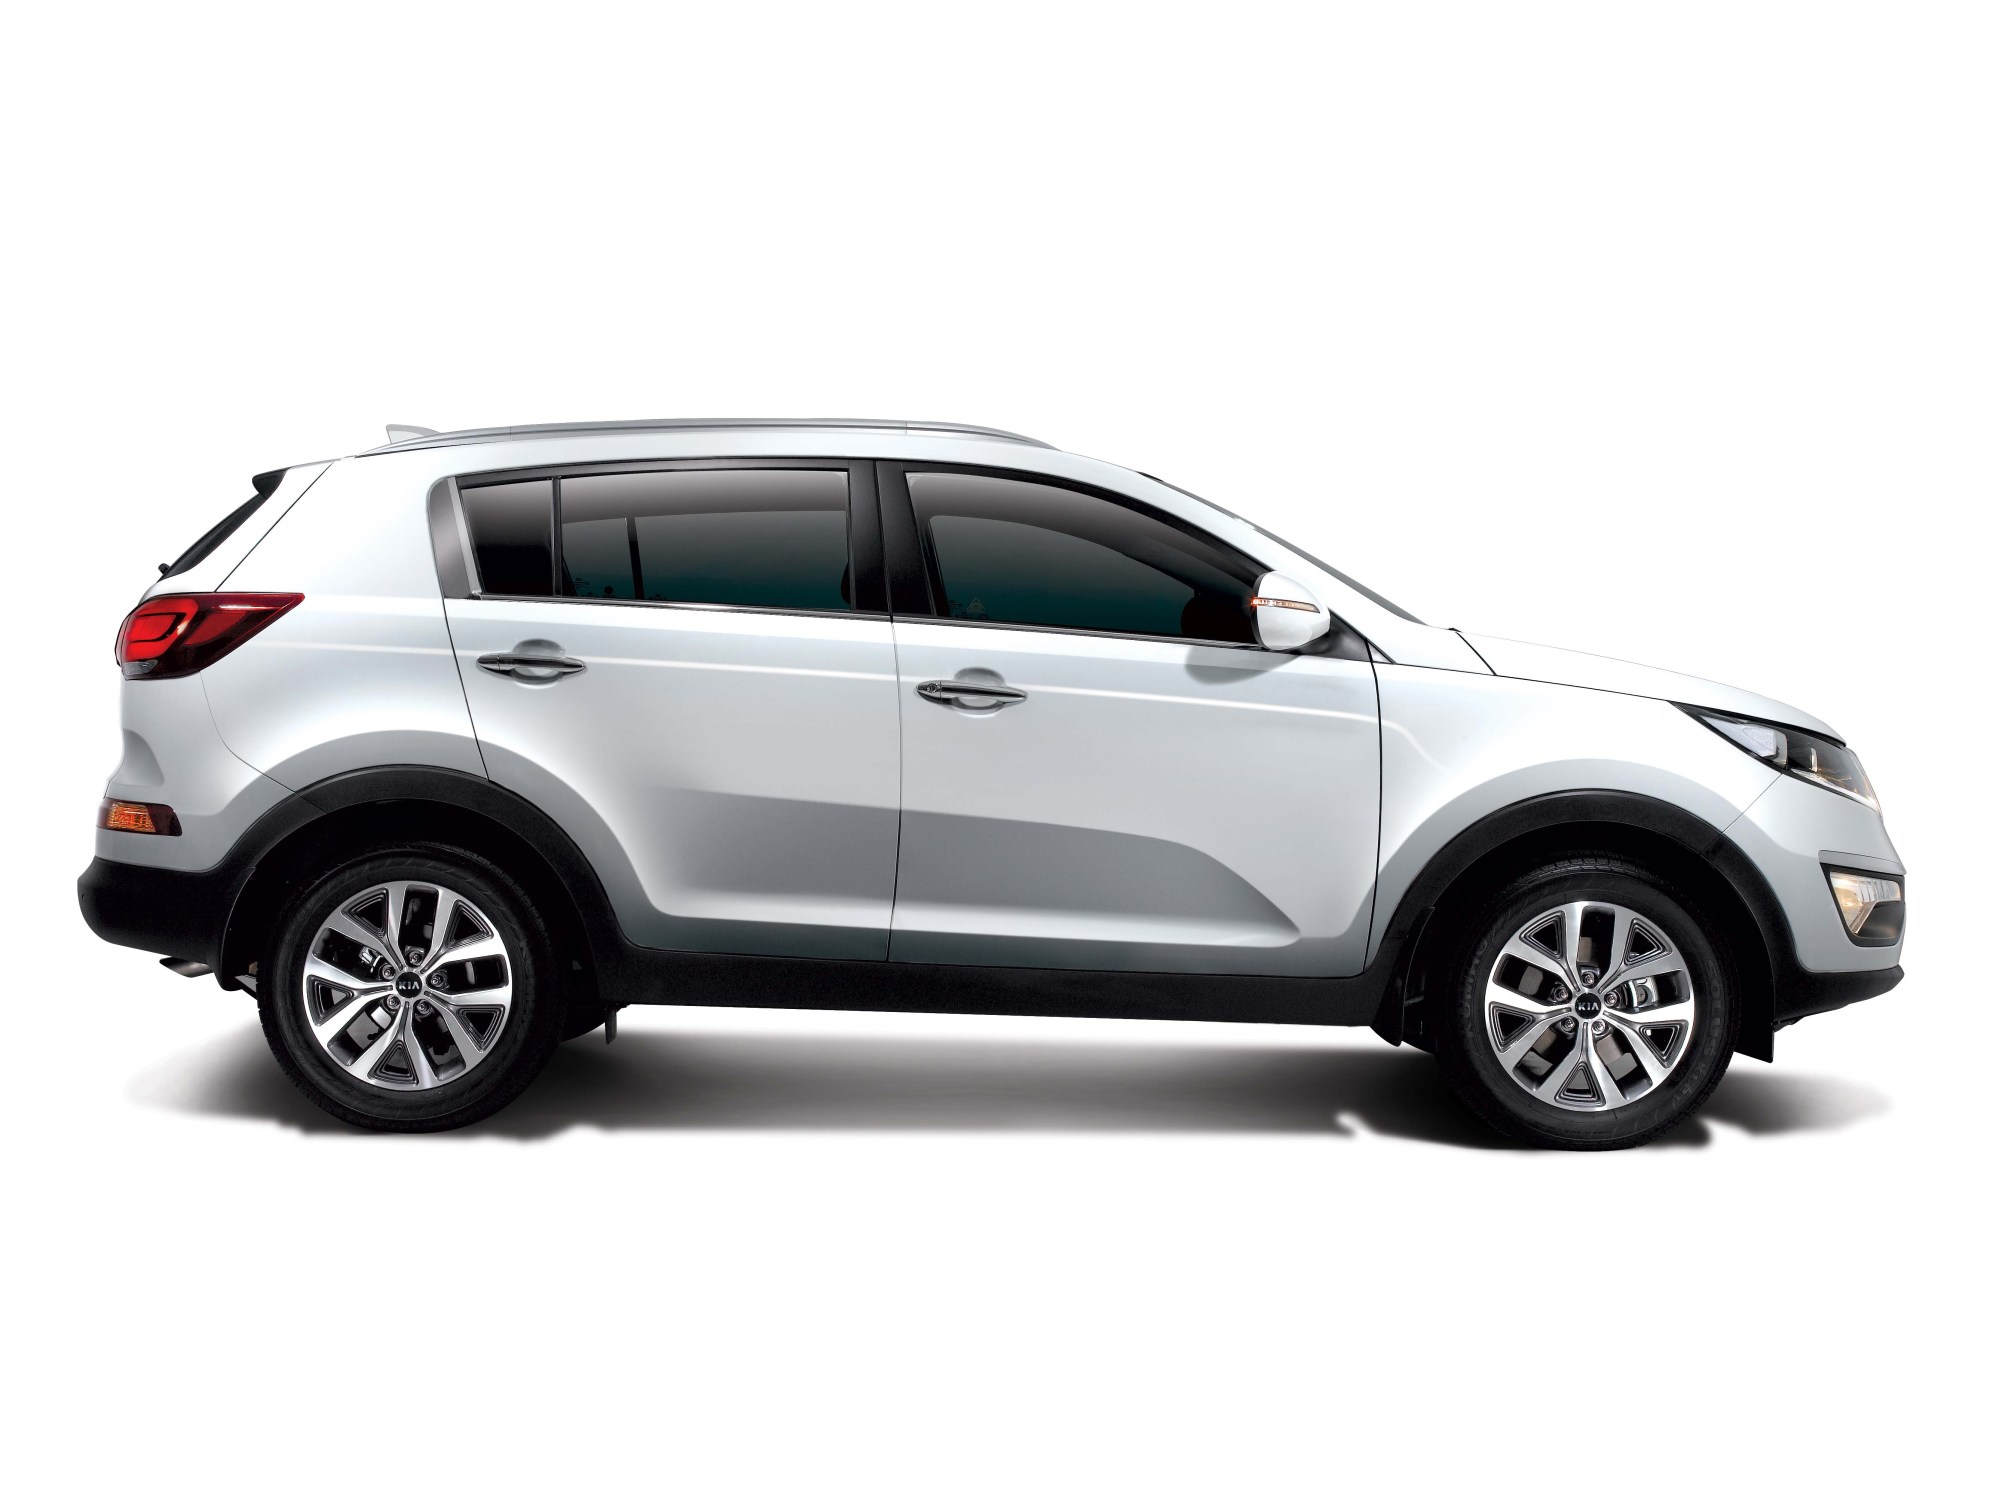 hight resolution of sportage 2wd side view